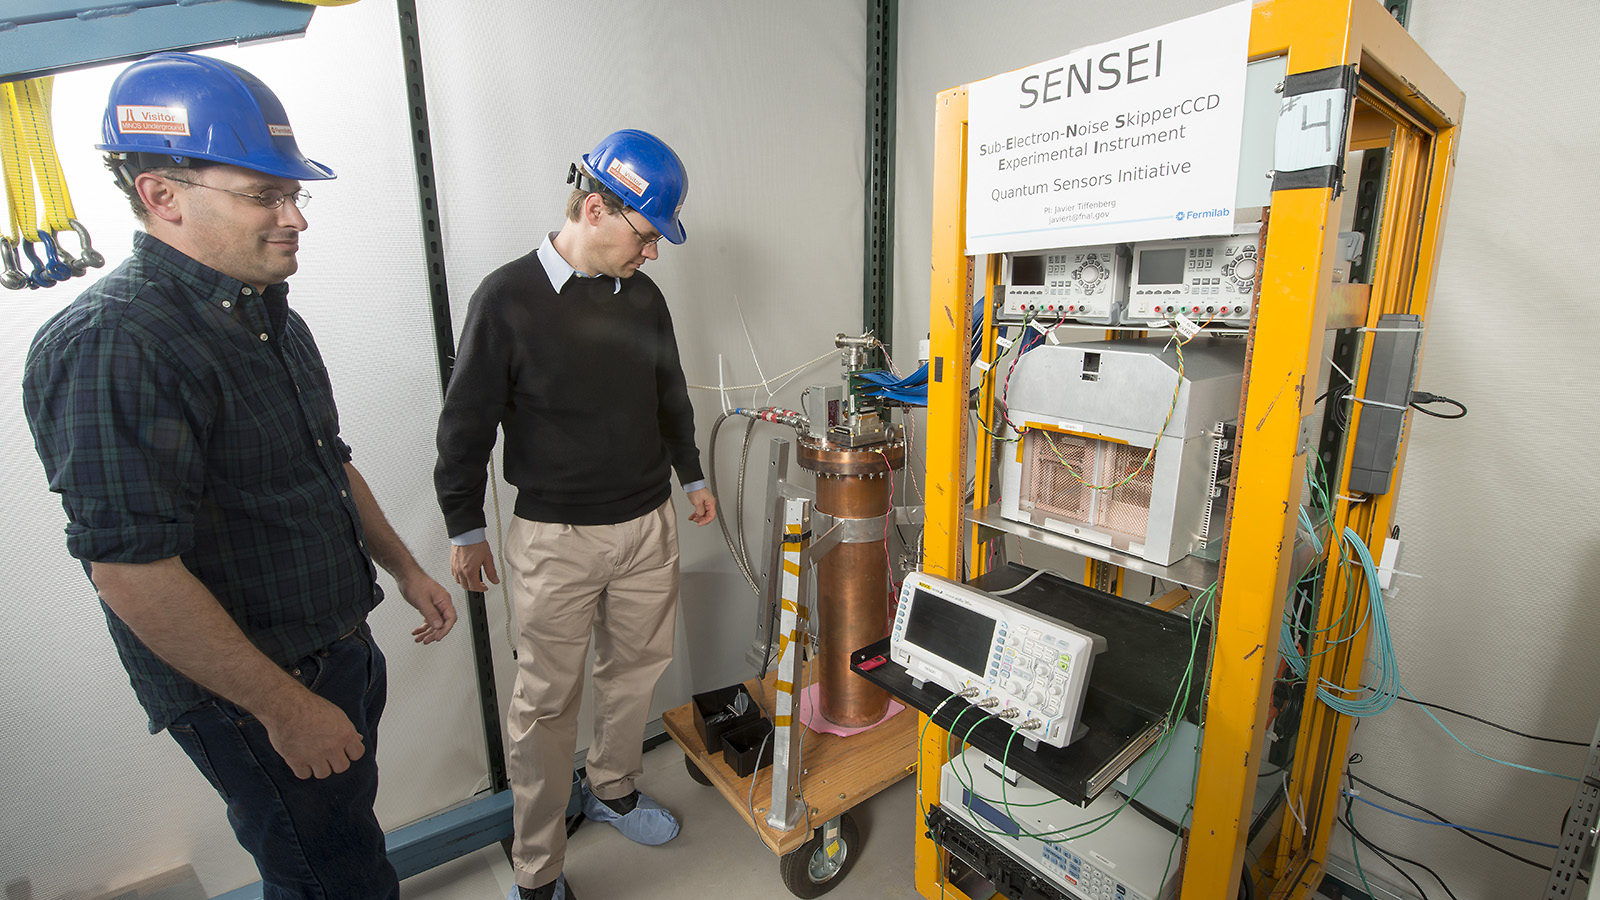 Two scientists in hard hats stand next to a cart holding detector components.